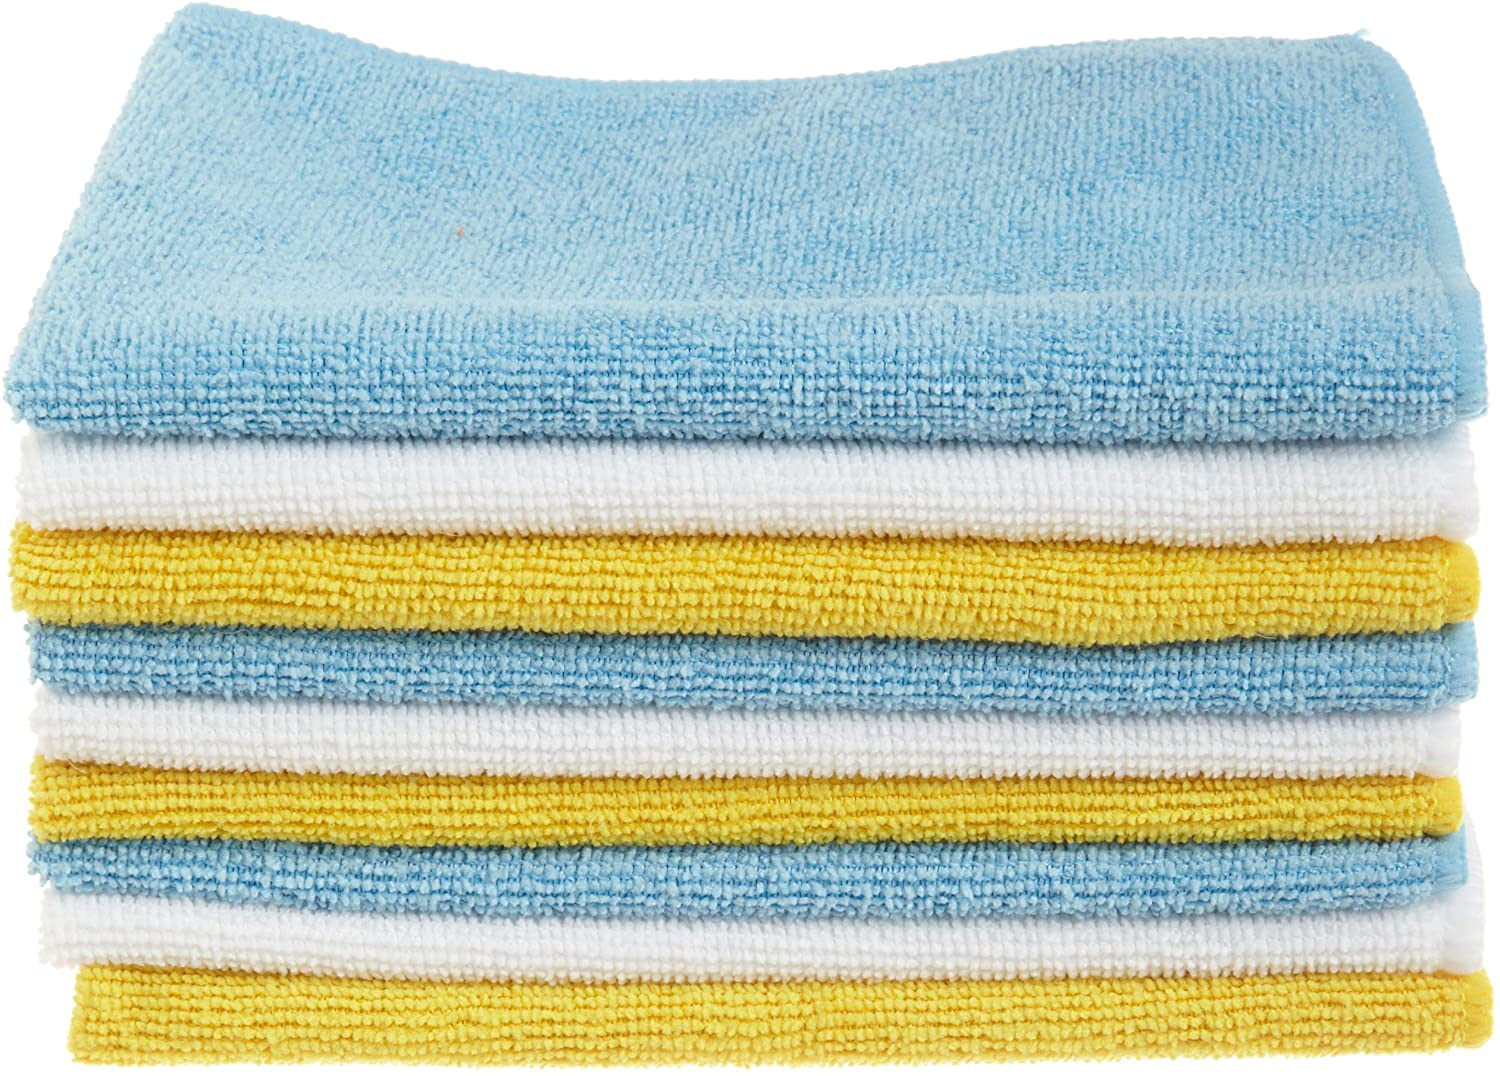 🔥SweepStakes 100% FREE: 200pcs Giveaway in 48 Hrs🔥 🔥 First Come, First Get, Click to WIN 🔥🔥Microfiber Cleaning Cloths- Pack of 144🔥